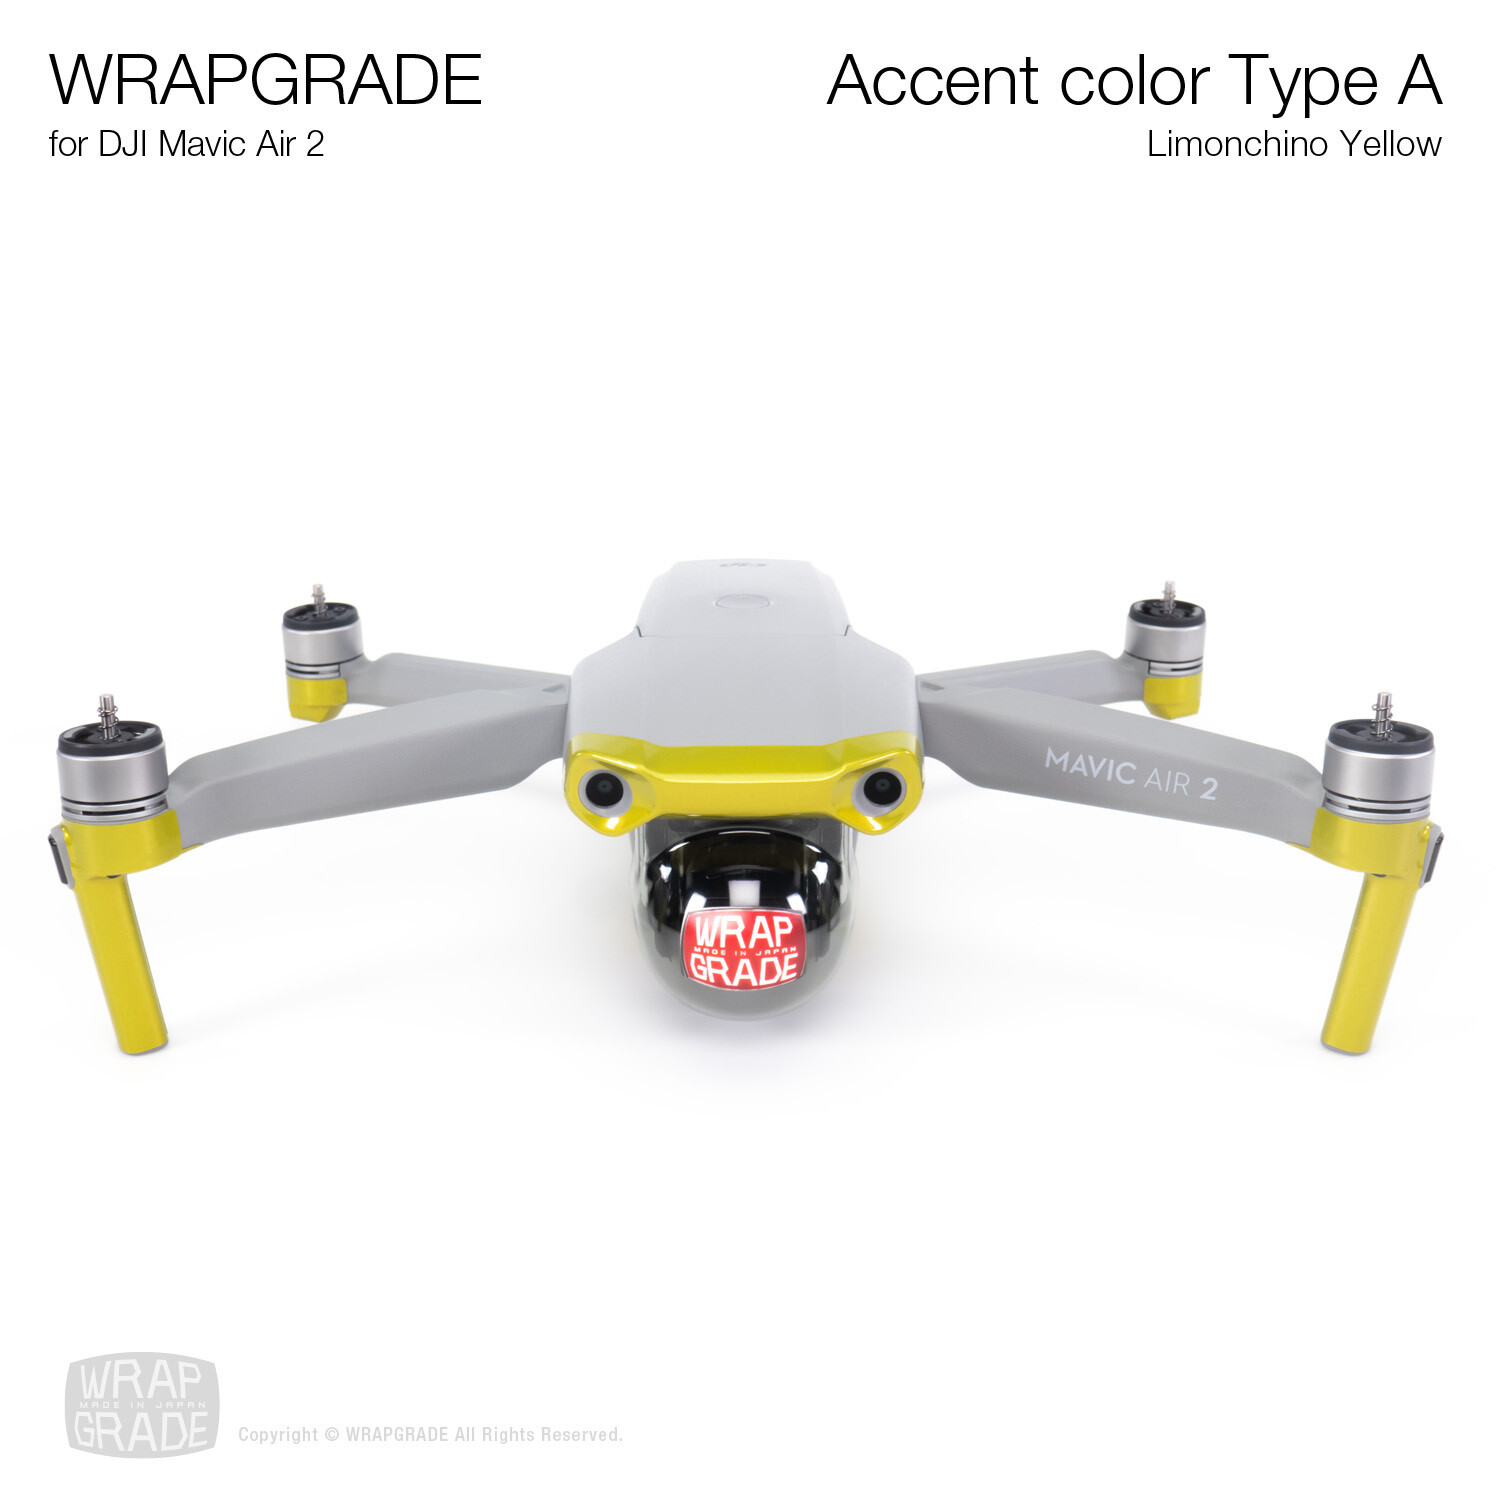 Wrapgrade for DJI Mavic Air 2 | Accent Color A (LIMIONCINO YELLOW)